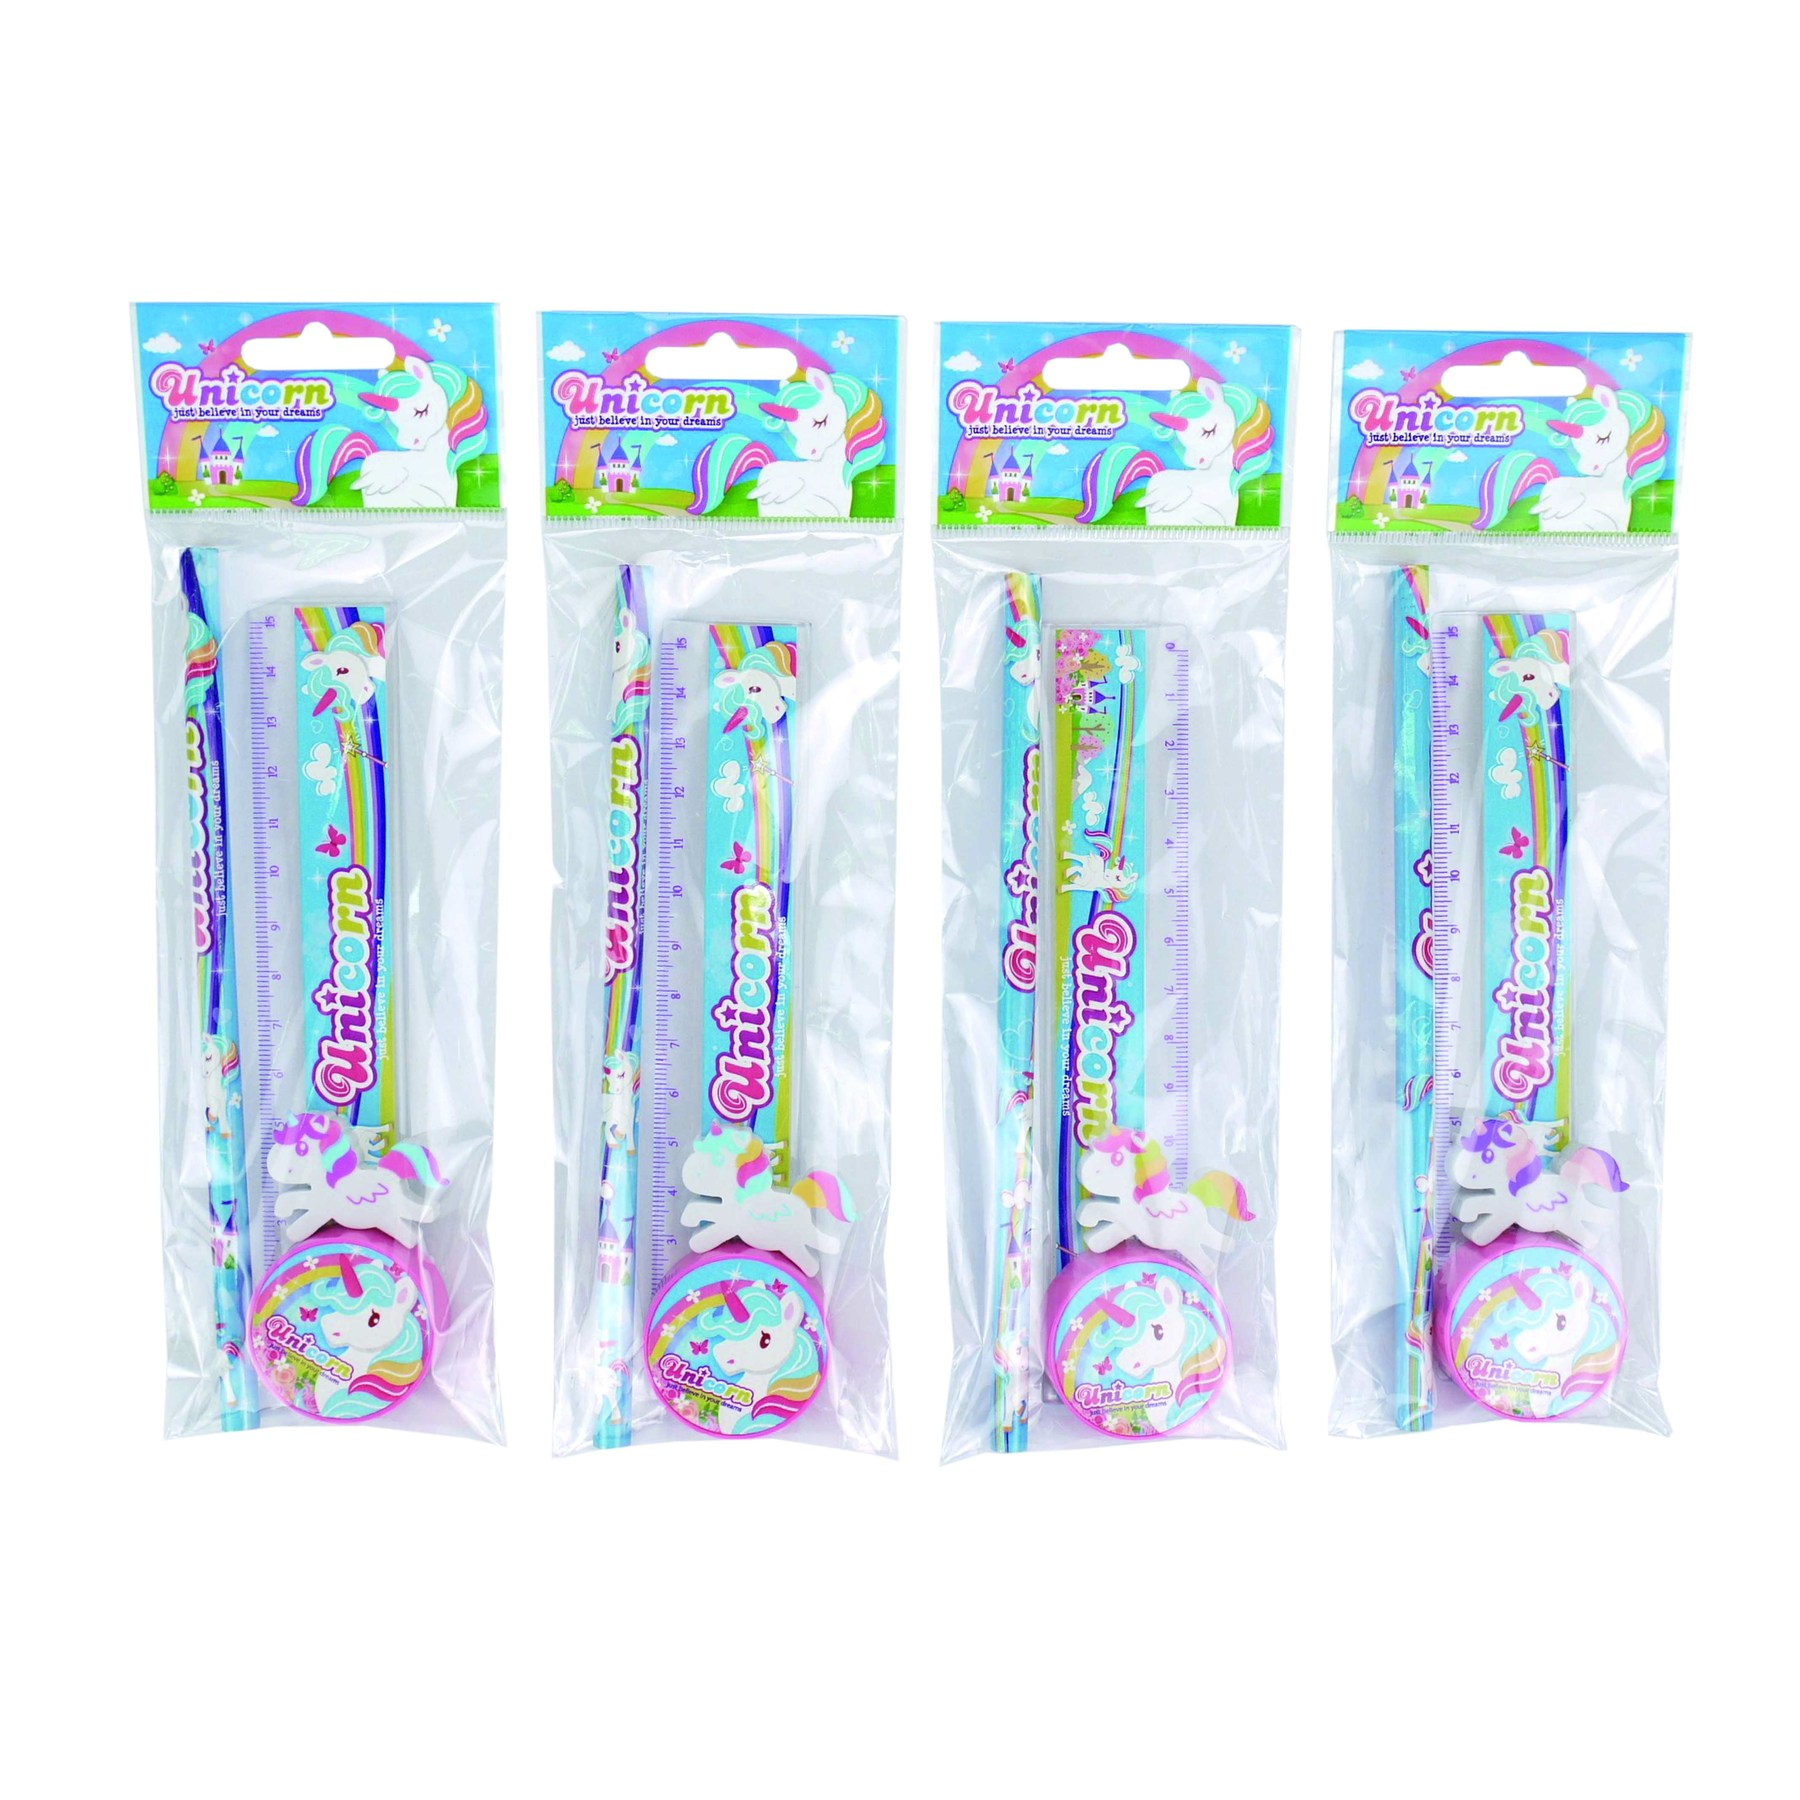 Set 4 PCs Stationery Unicorn In Mini Gift Bag-Details And Gifts For Weddings, Baptisms, Communions, Birthday And Parties.